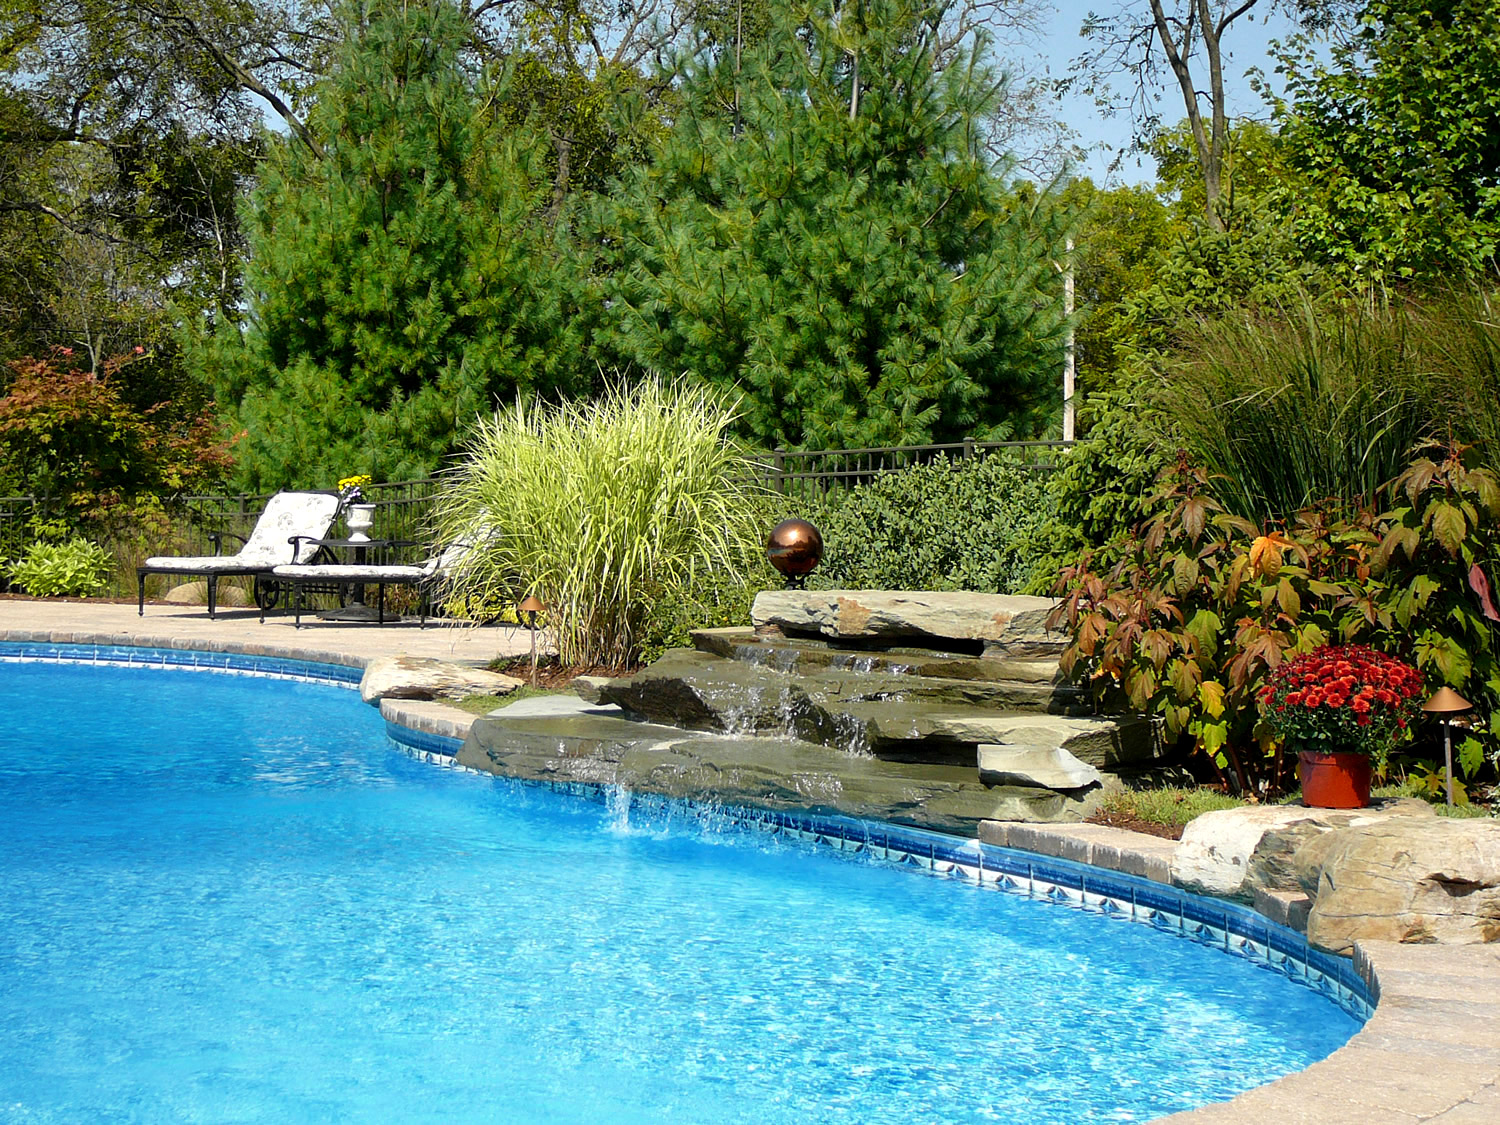 Waterfalls are an awesome addition to any pool hardscape